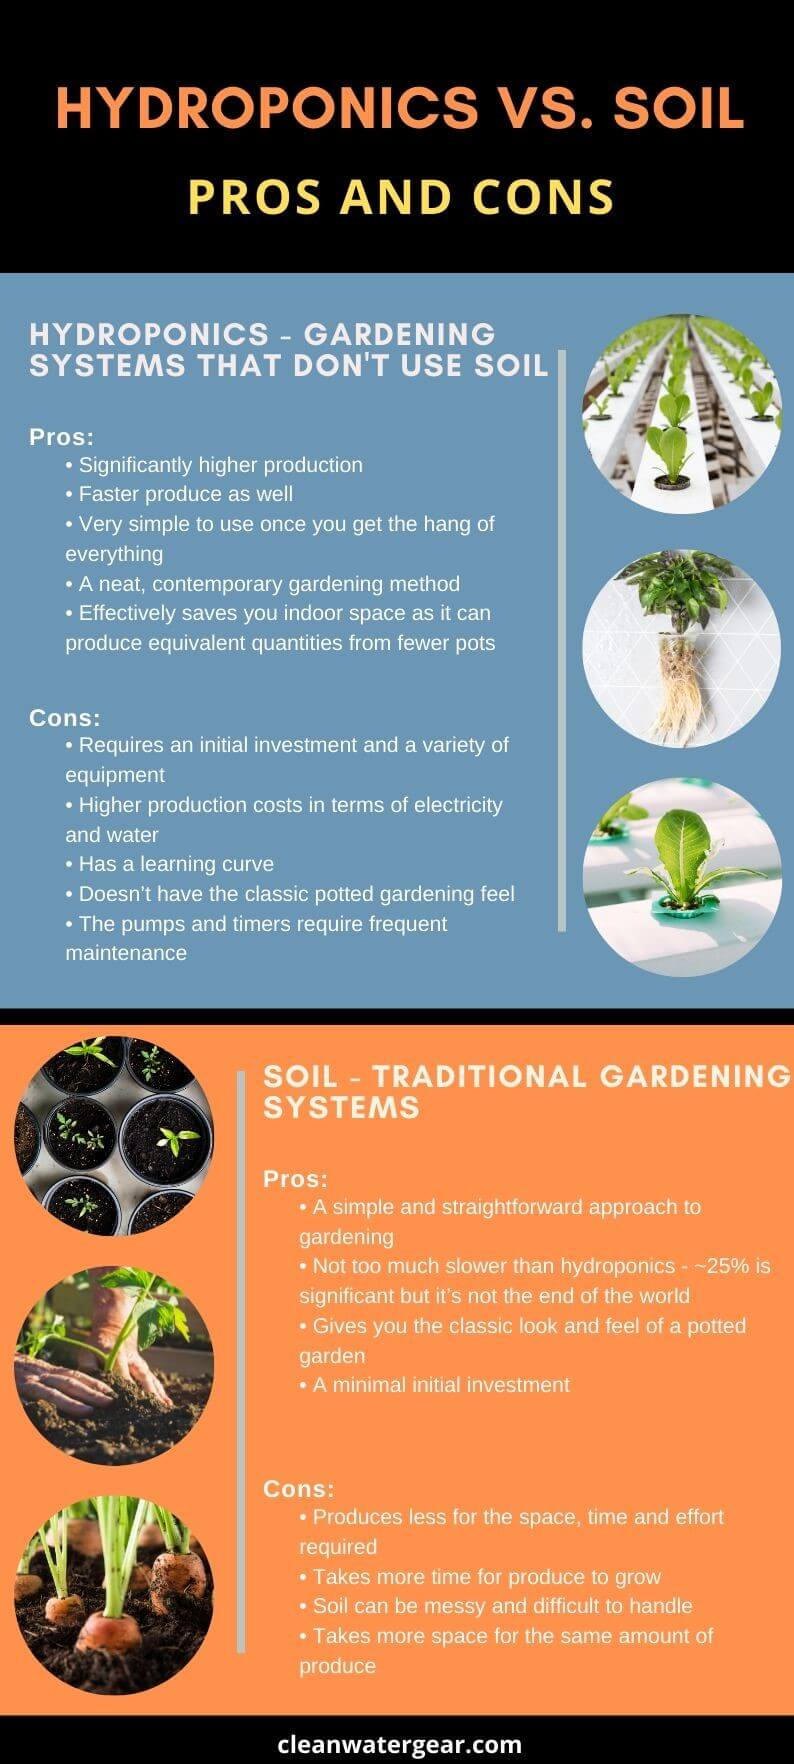 Hydroponics vs soil pros and cons